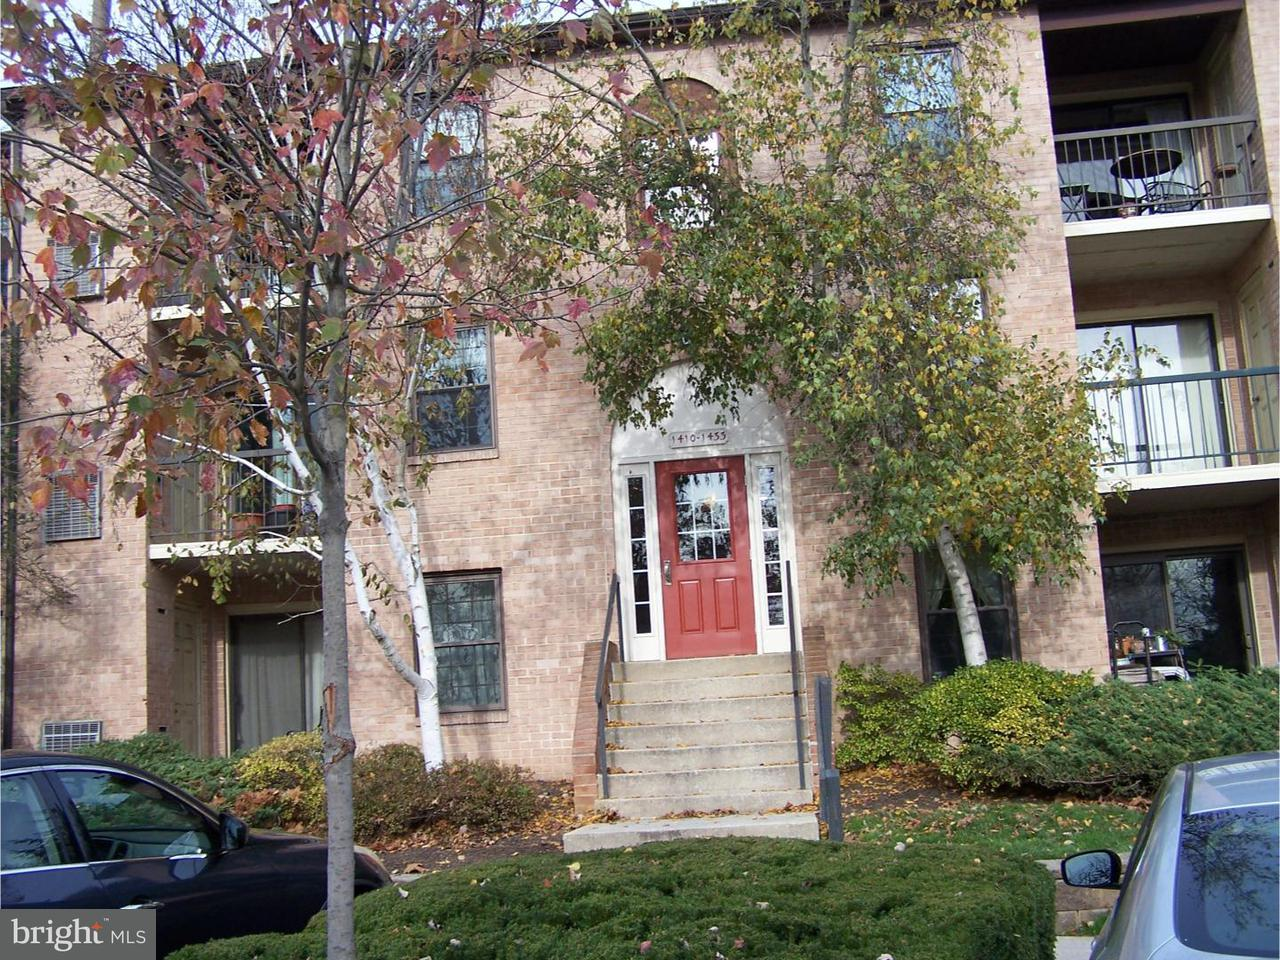 1423  Washington Wayne, PA 19087